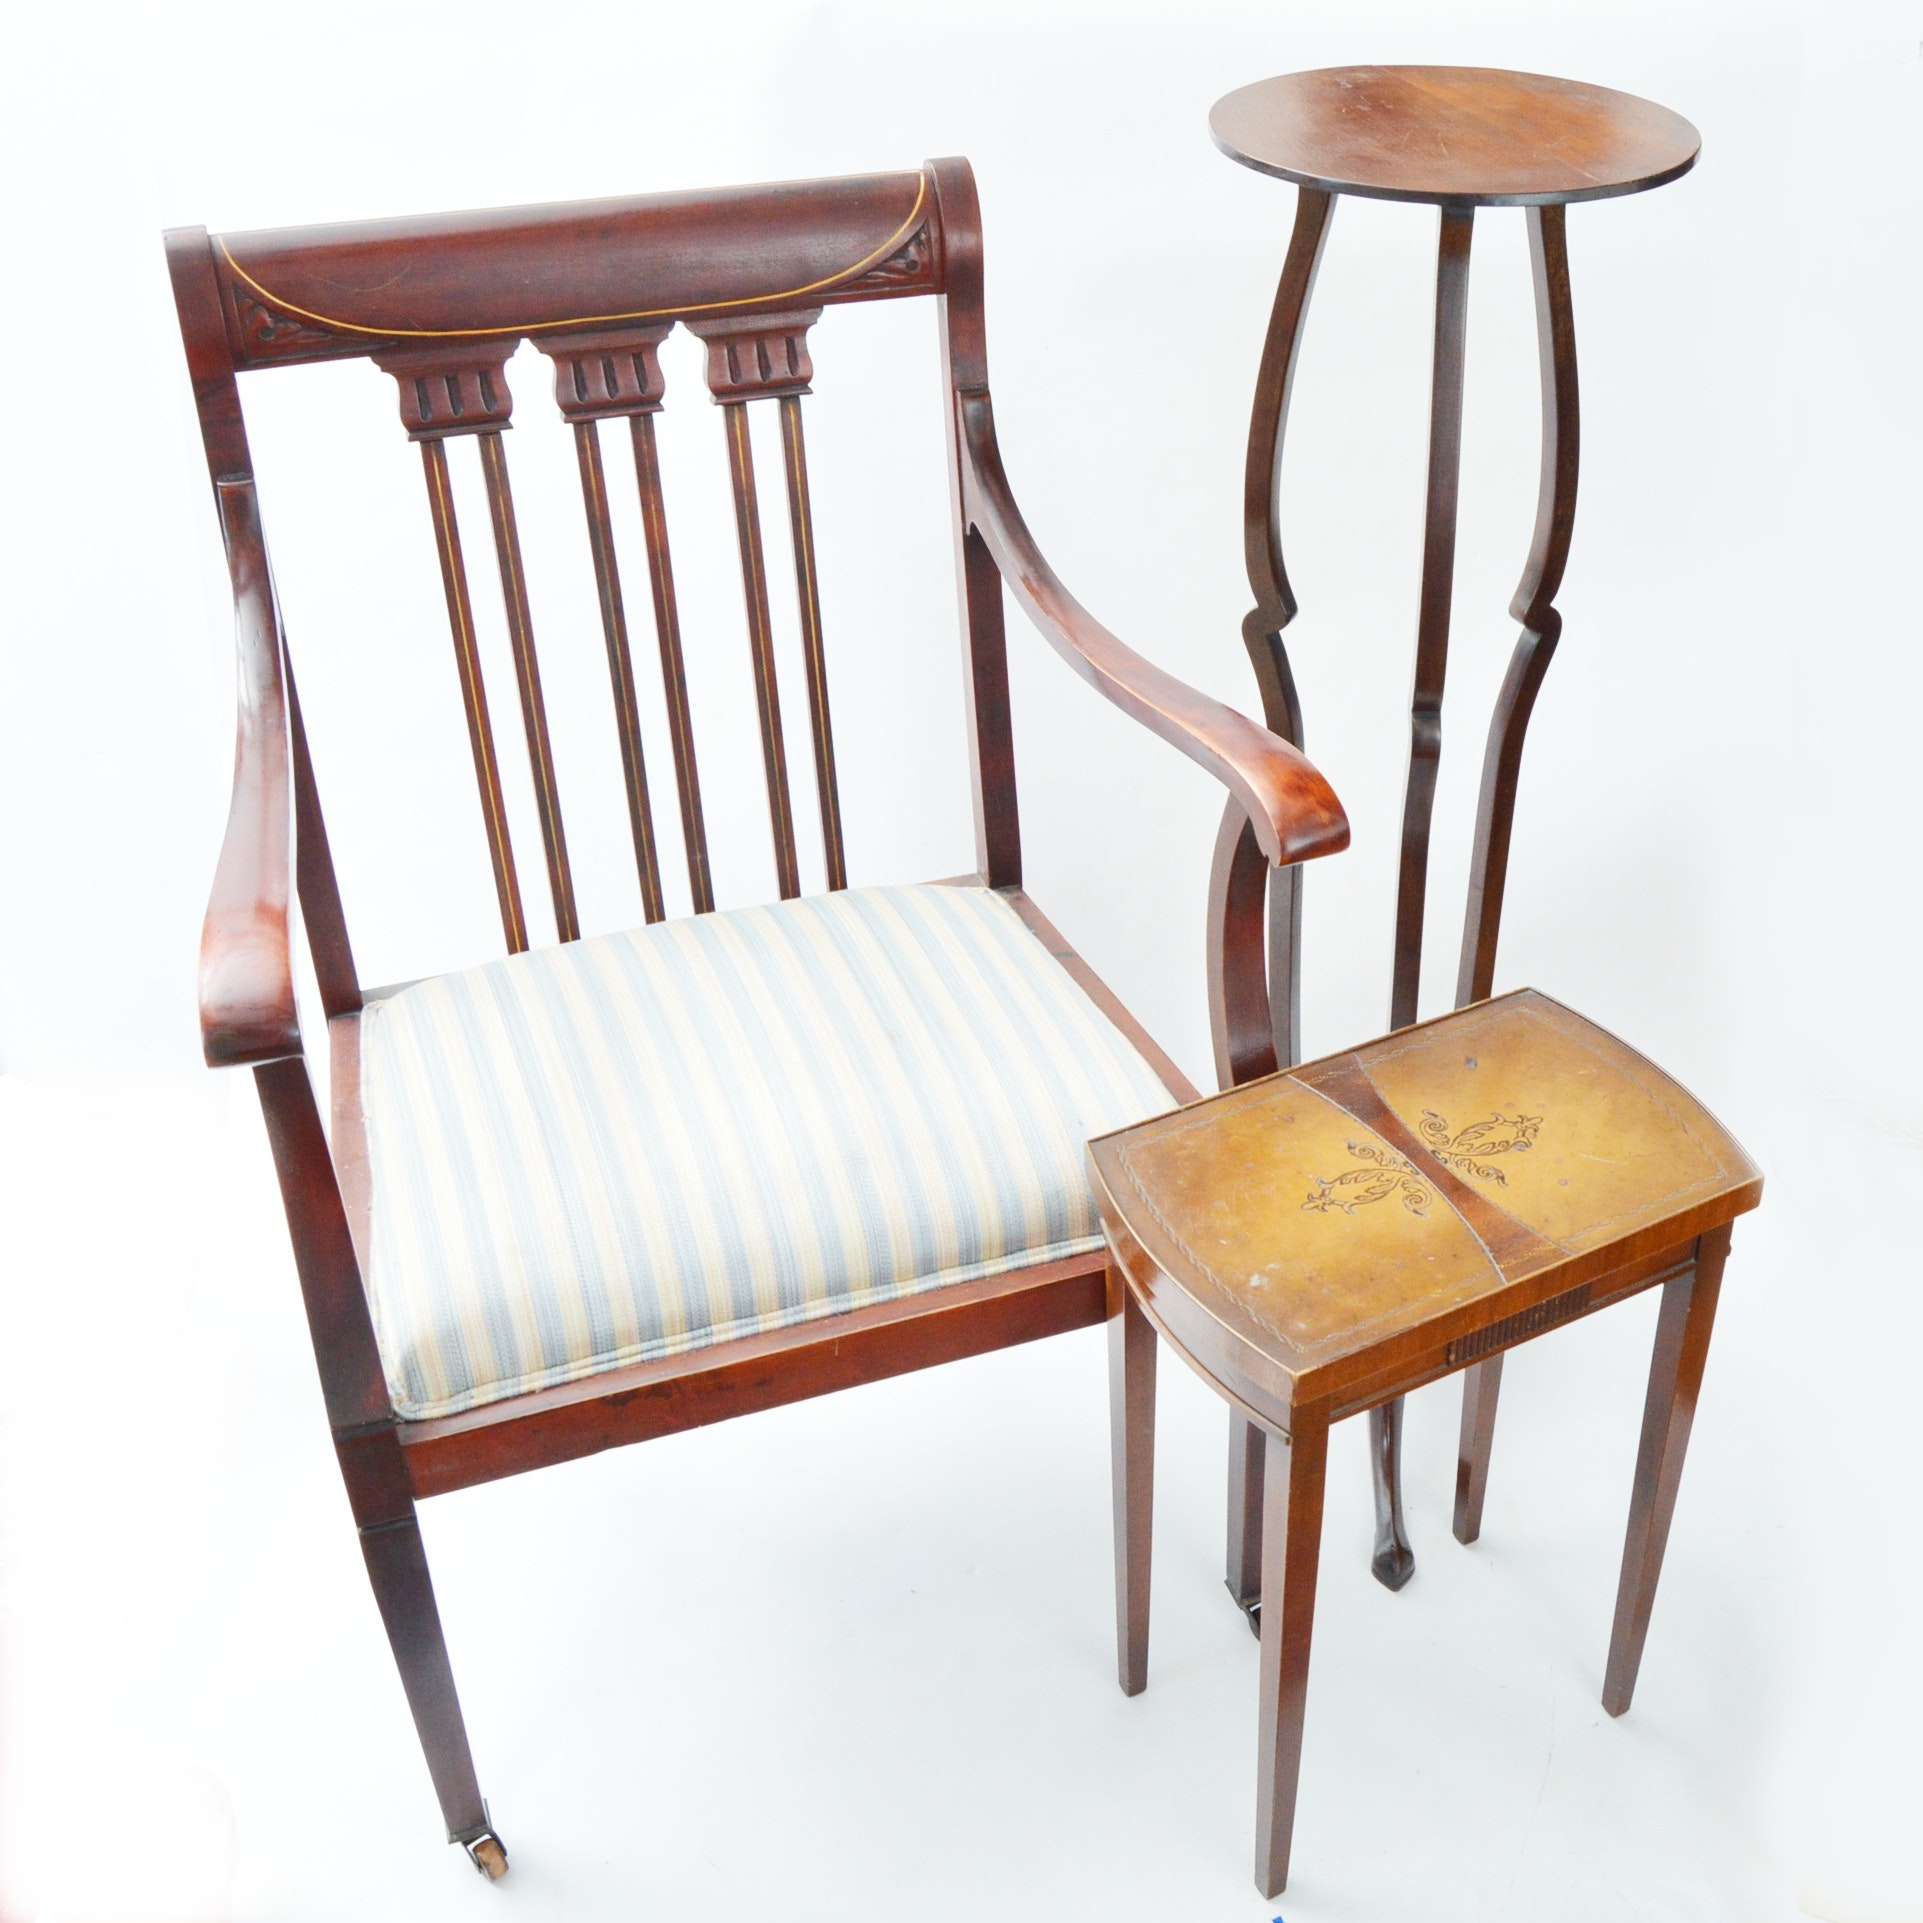 Neoclassic Style Chair, Side Table and Pedestal